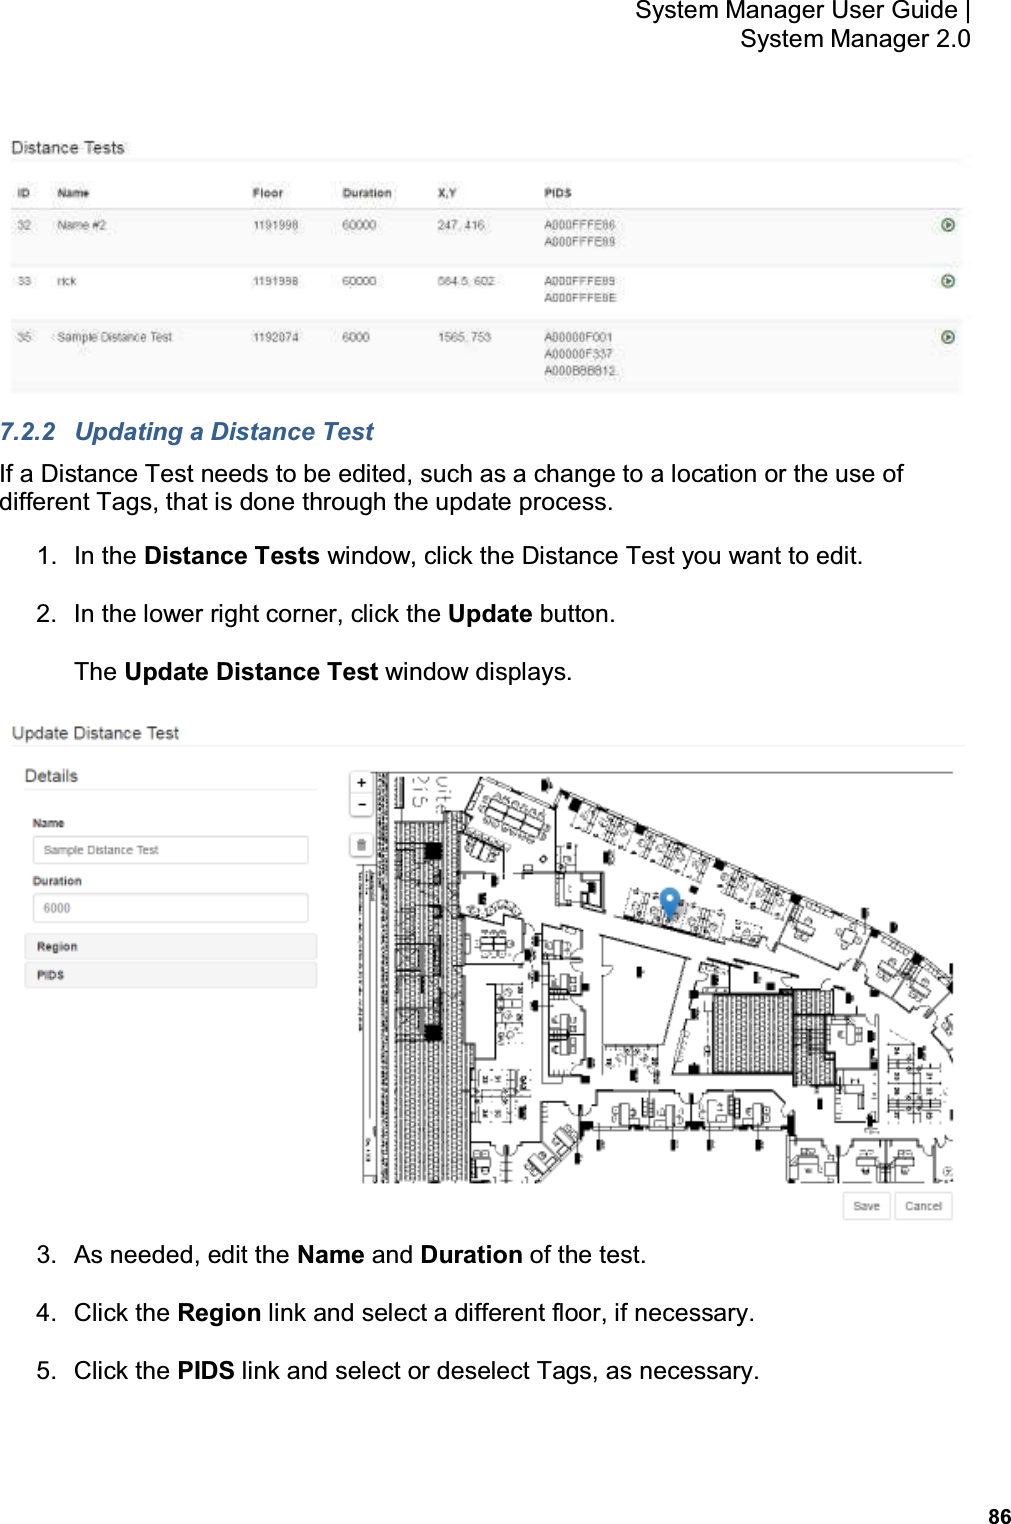 86 System Manager User Guide    System Manager 2.0  7.2.2  Updating a Distance Test If a Distance Test needs to be edited, such as a change to a location or the use of different Tags, that is done through the update process. 1.  In the Distance Tests window, click the Distance Test you want to edit. 2.  In the lower right corner, click the Update button. The Update Distance Test window displays.  3.  As needed, edit the Name and Duration of the test. 4.  Click the Region link and select a different floor, if necessary. 5.  Click the PIDS link and select or deselect Tags, as necessary.